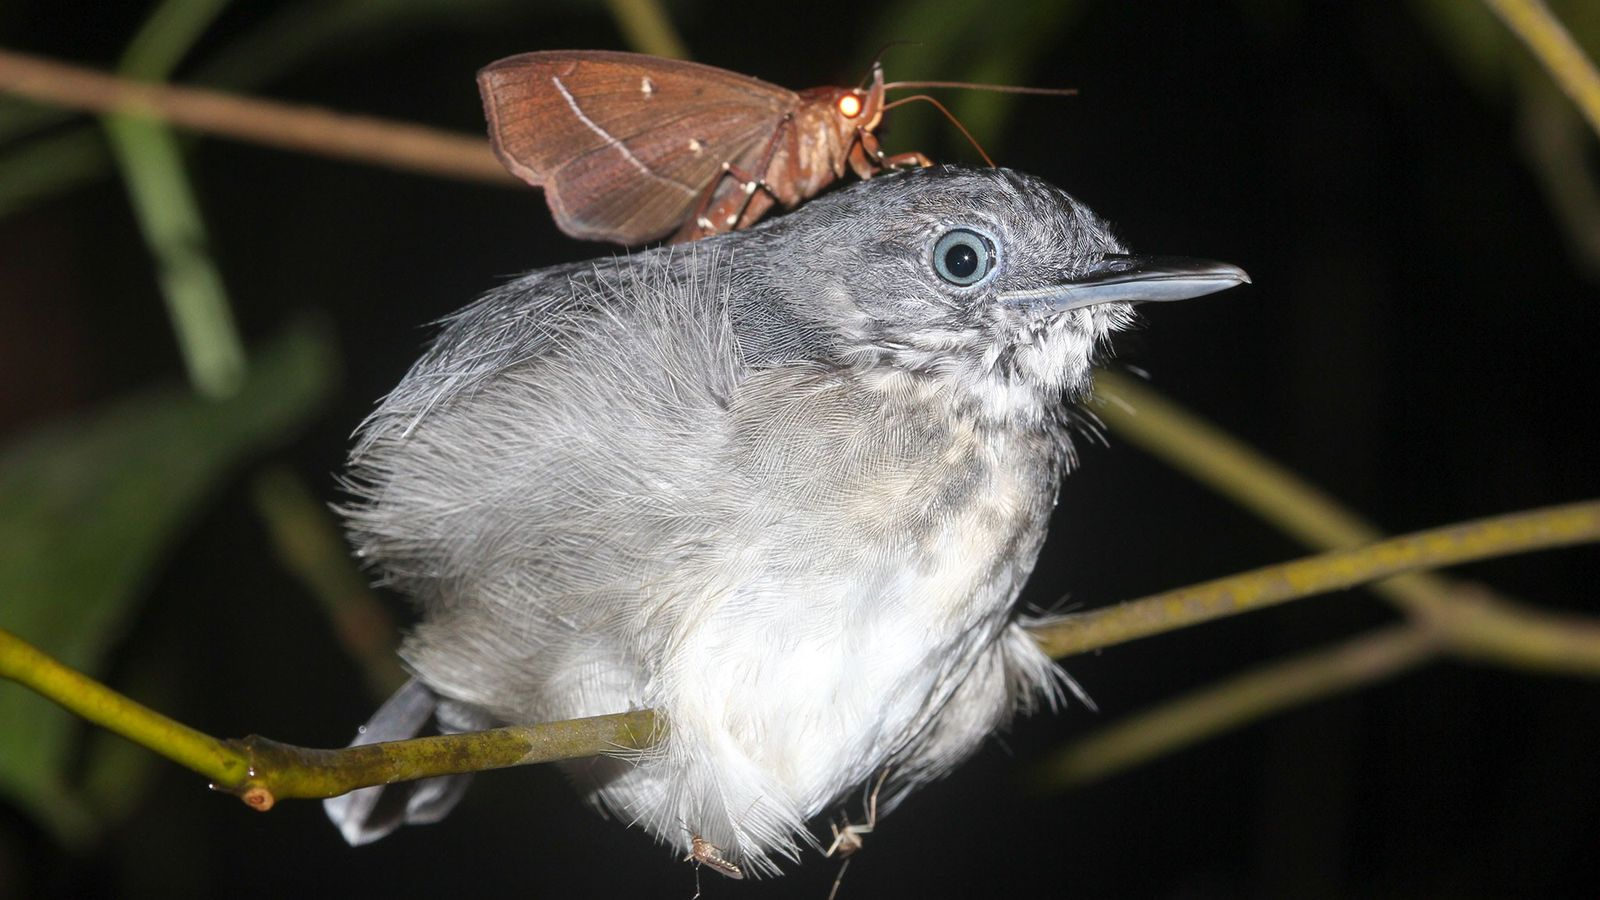 A biologist spotted this moth ('Gorgone macarea') sitting on the neck of a black-chinned antbird in ...